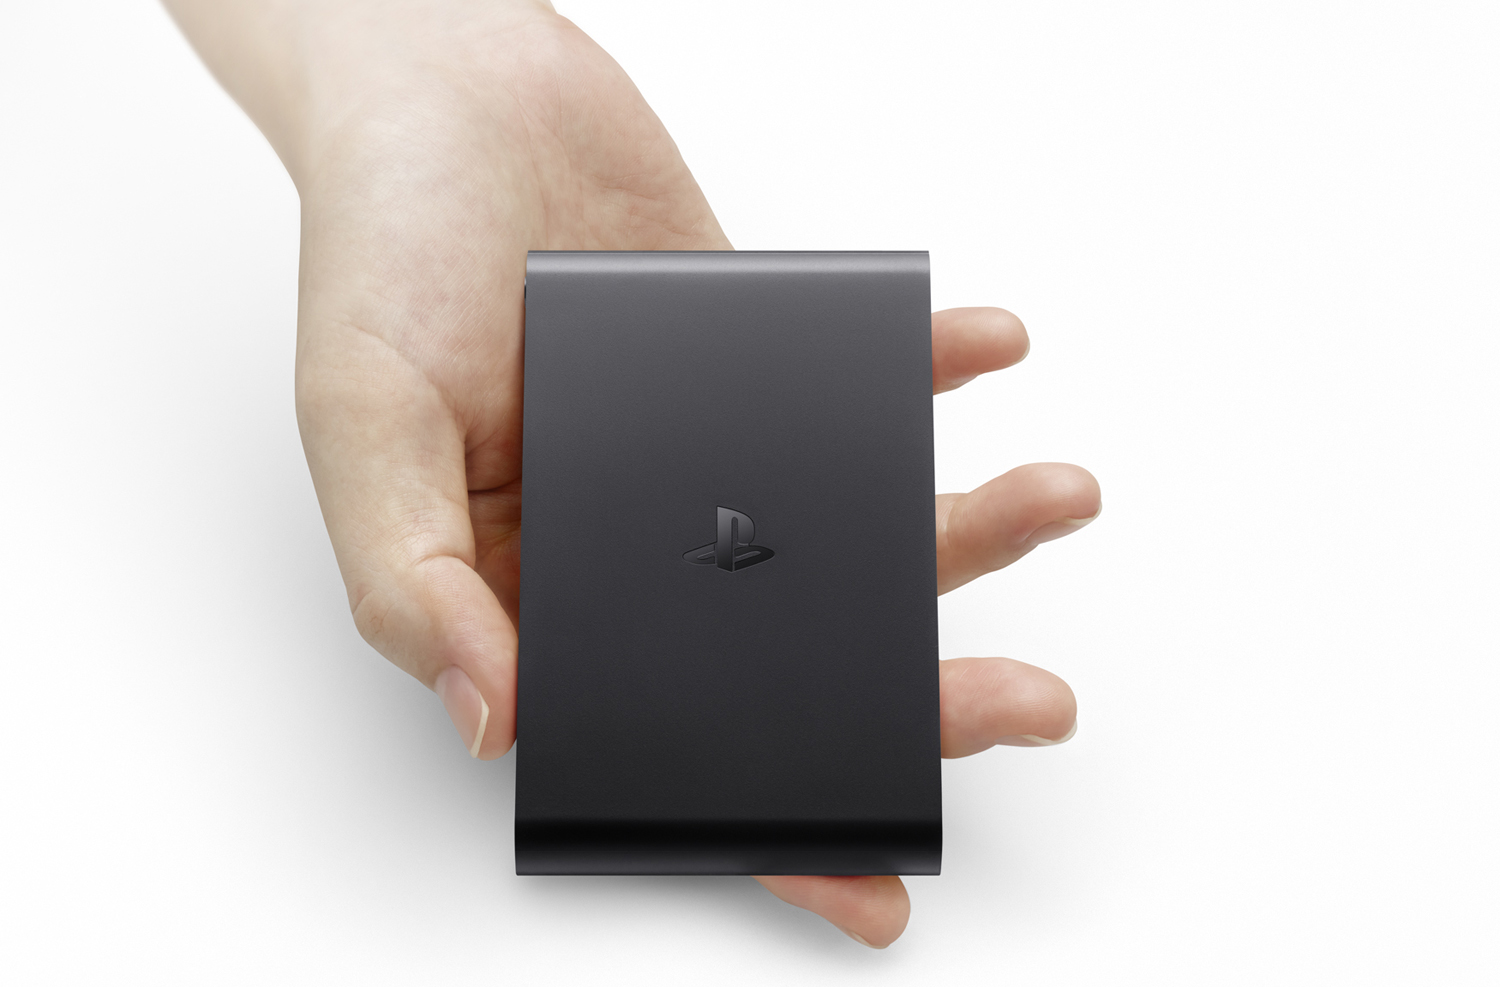 Apple TV vs PlayStation TV